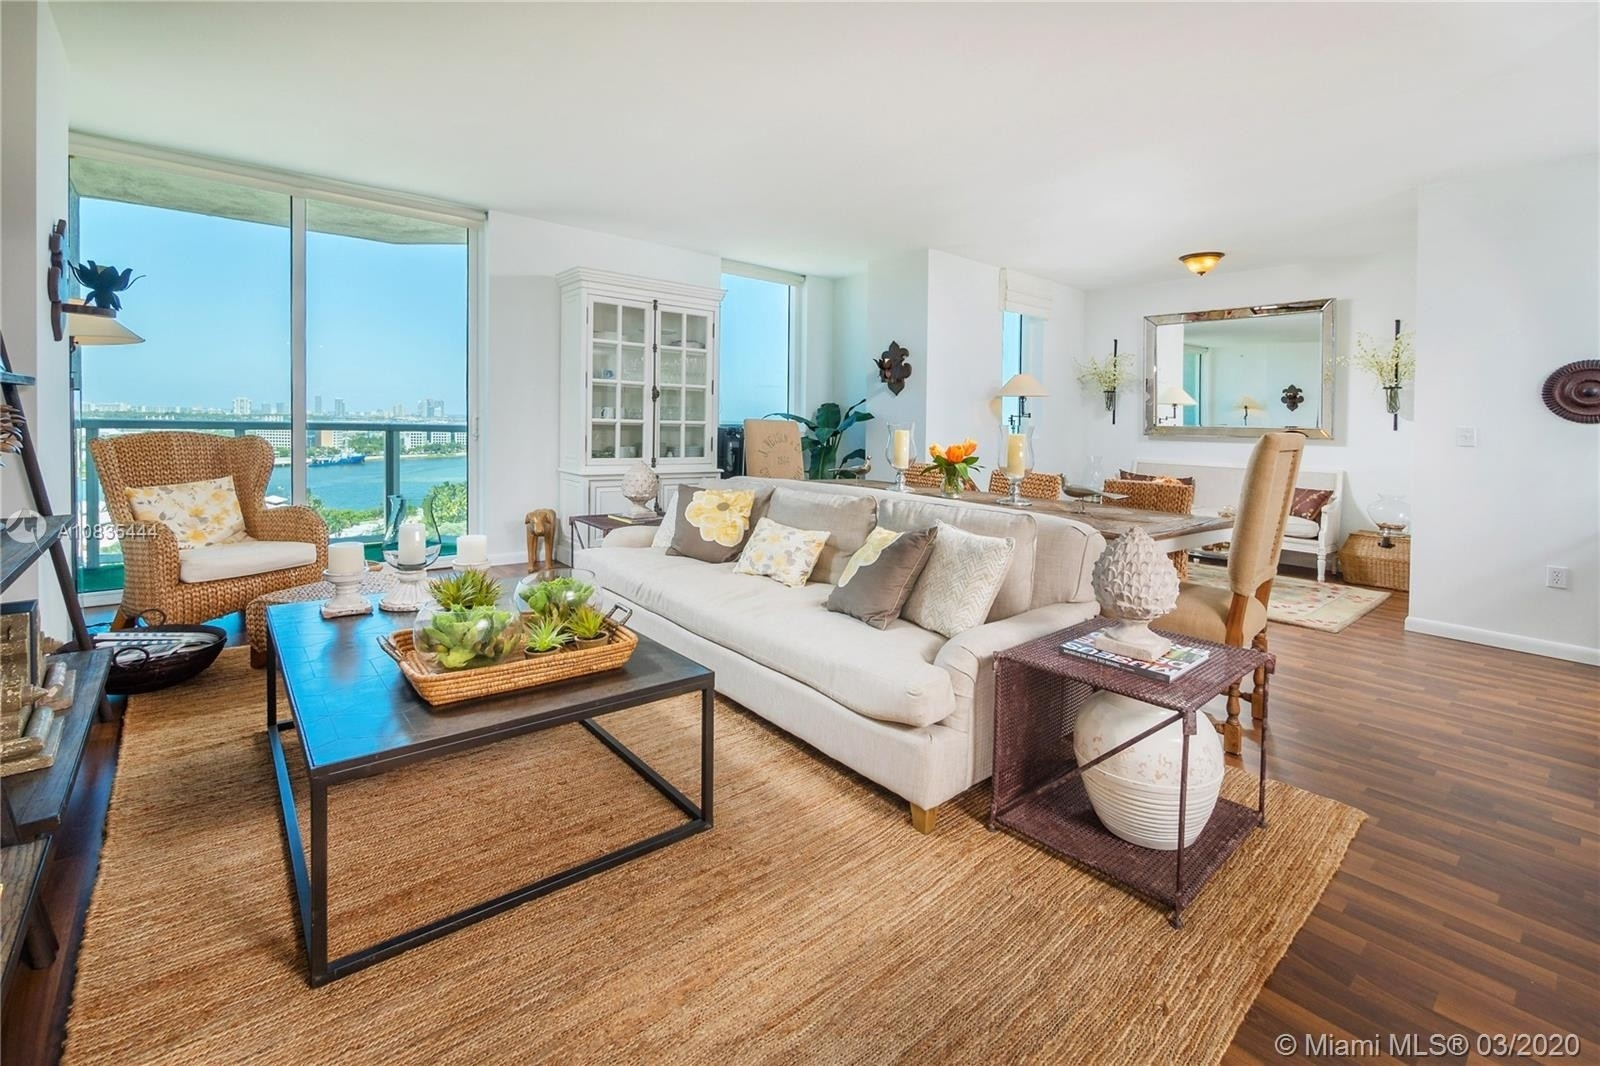 Condominium pour l Vente à 244 Biscayne BLVD , 1703 Miami Central Business District, Miami, FL 33132